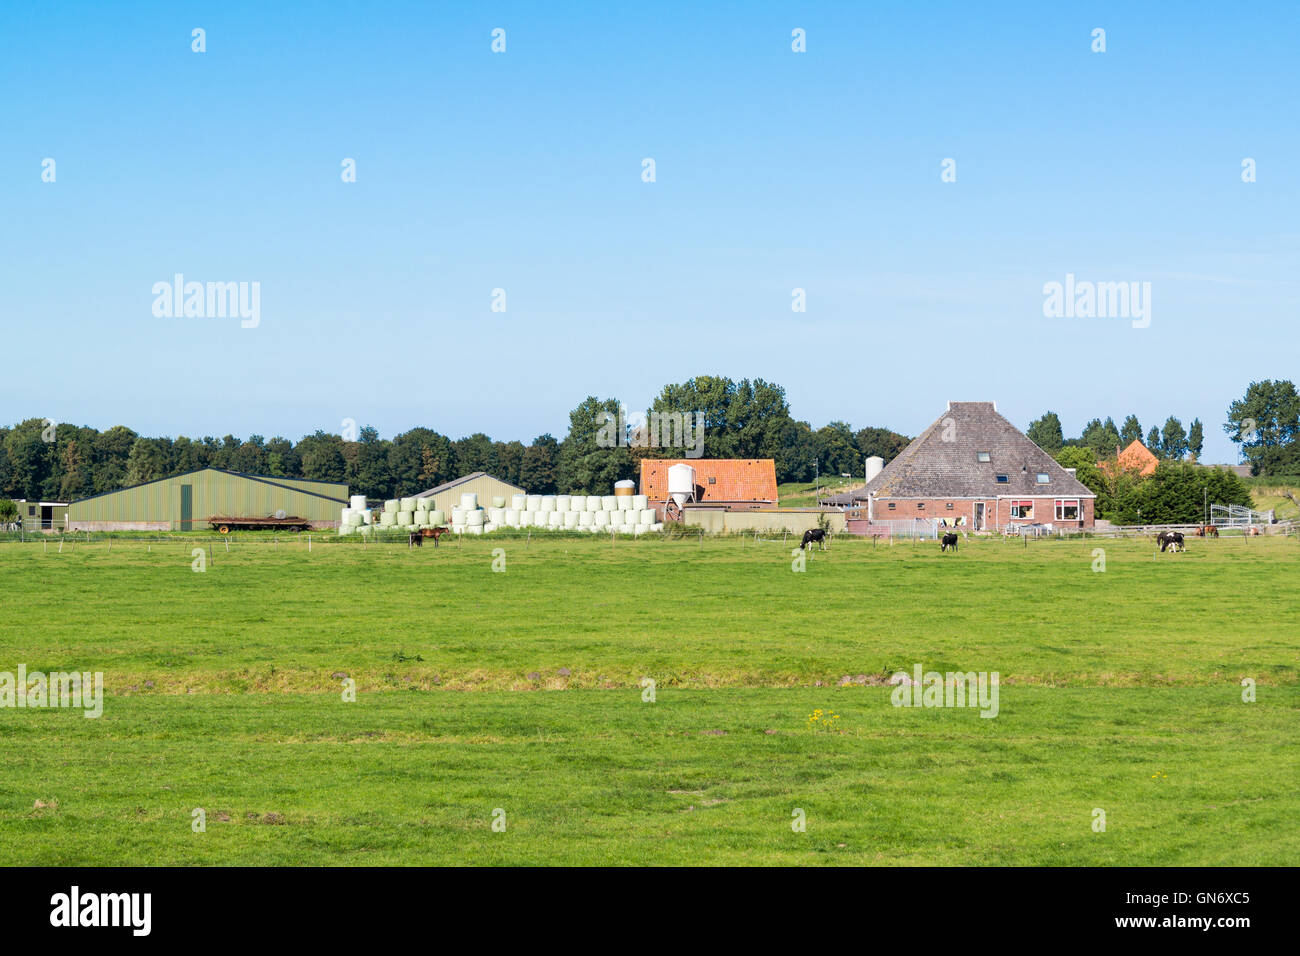 Farmhouse and meadows in polder near Spijkerboor in North Holland, Netherlands - Stock Image